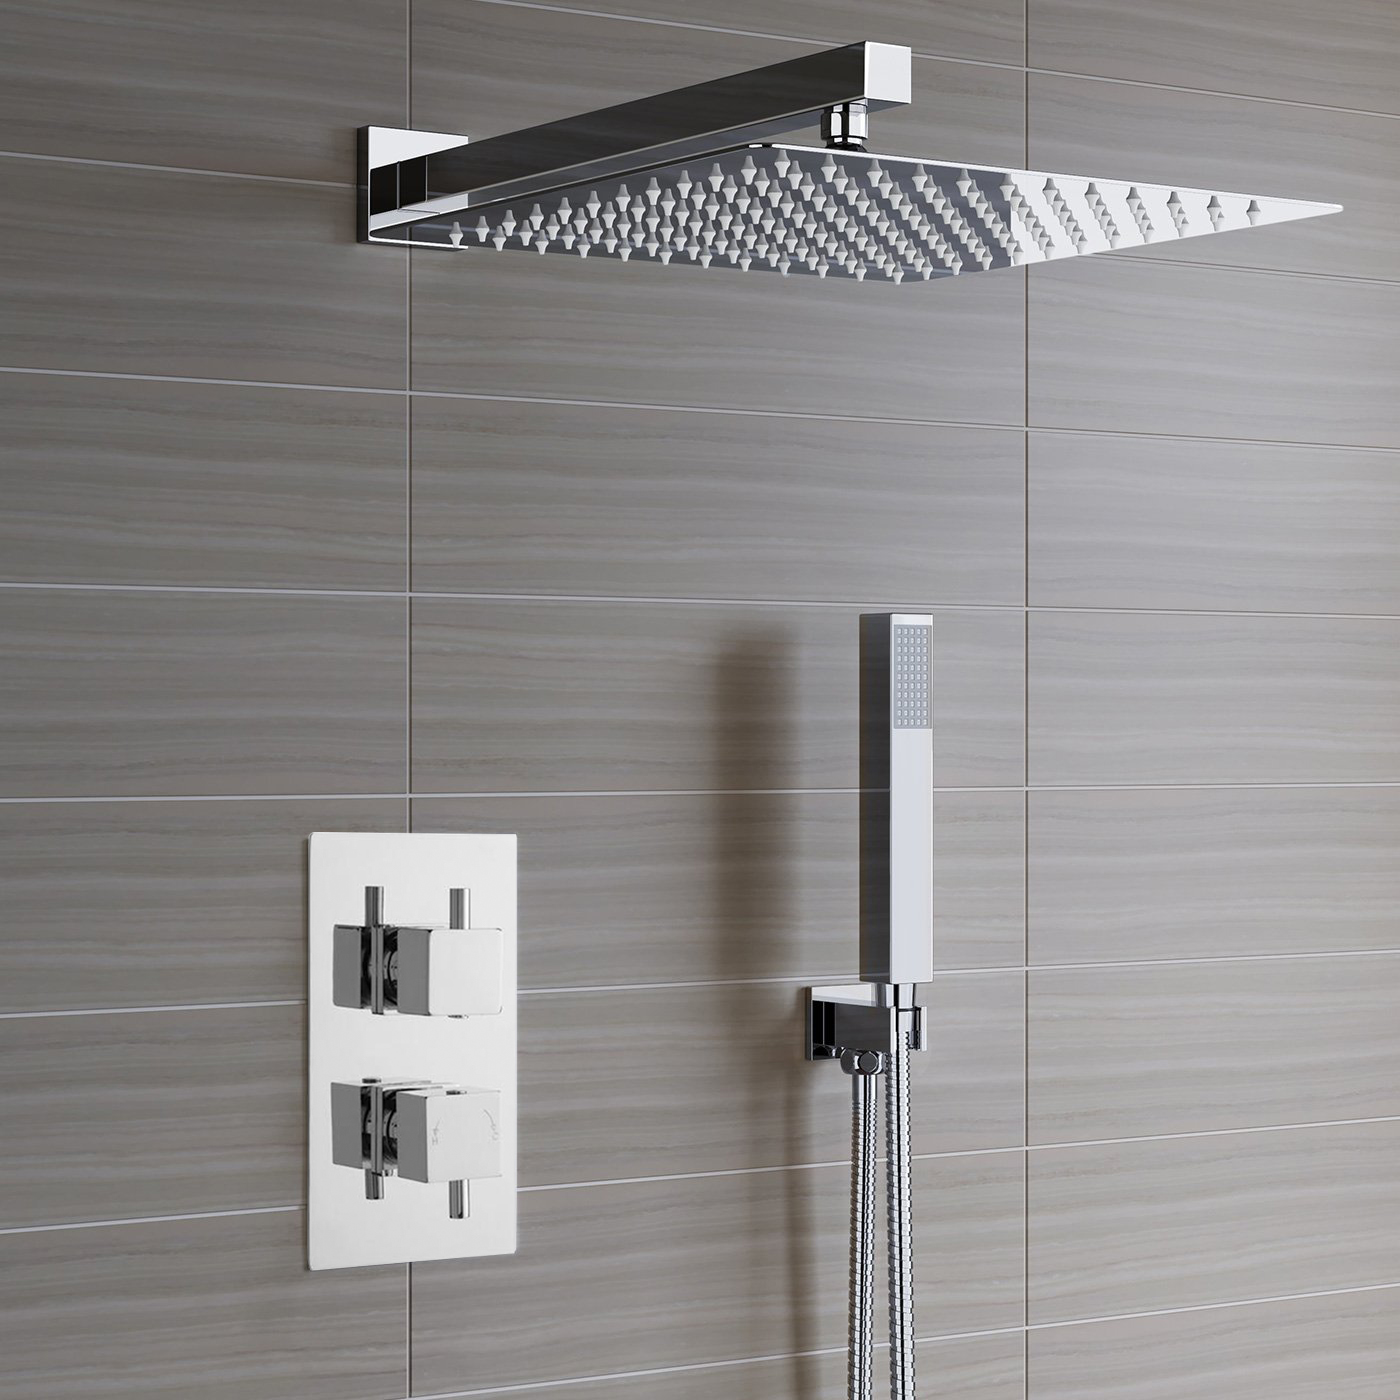 Lima Ultra Thin Rain Shower Head With Built-In Thermostatic Mixer And Hand Held Shower Set